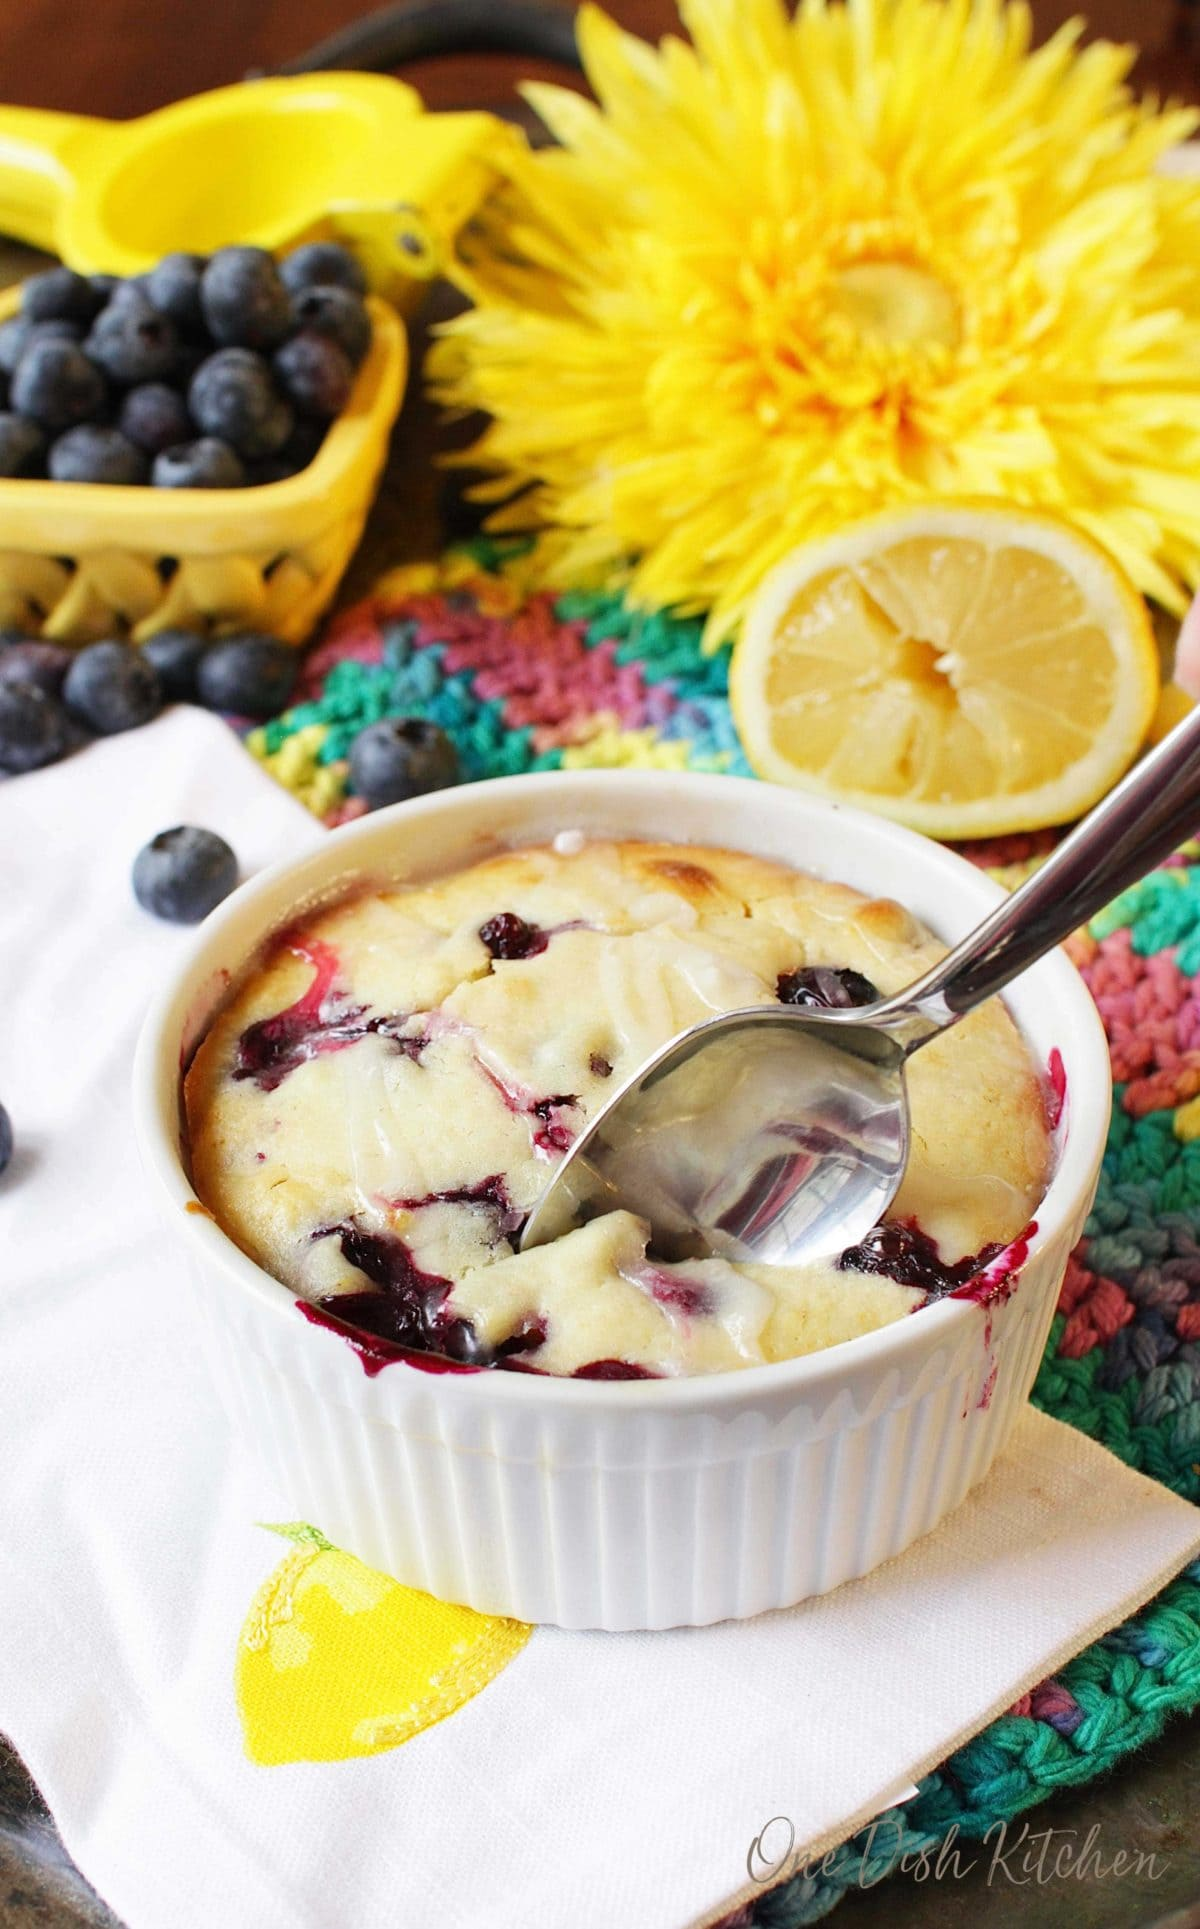 A spoonful of lemon blueberry muffin in a ramekin topped with sugar glaze on a metal tray surrounded by blueberries, half of a lemon, and a big yellow flower.